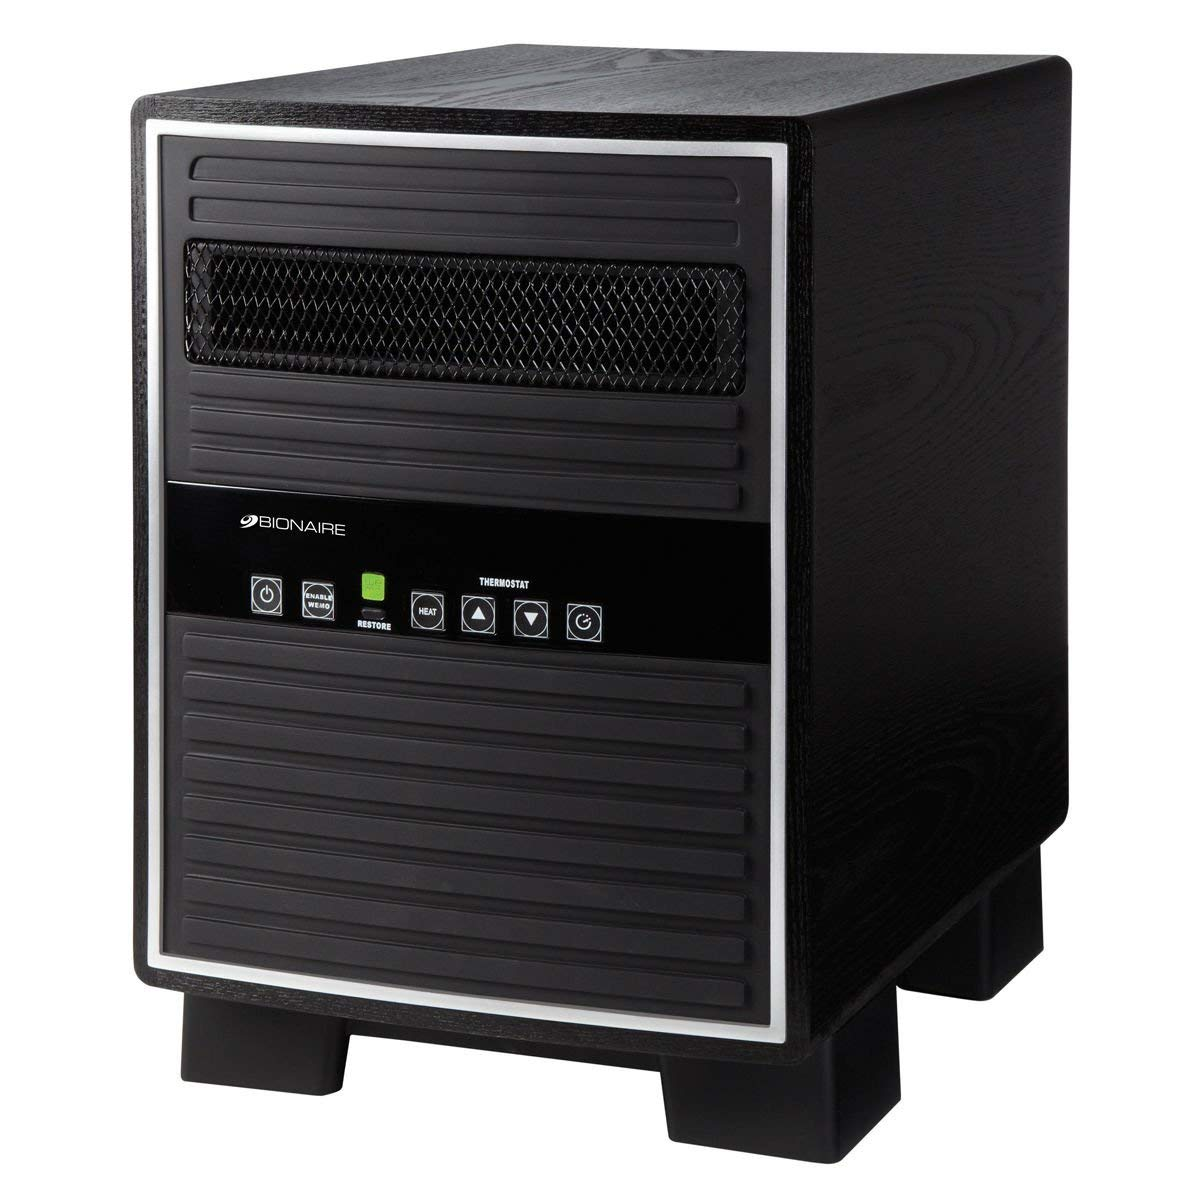 BRH7404WE-CN Bionaire We Mo Enabled Infrared 6 Quartz X-Large Smart Console Heater 1500 Watts